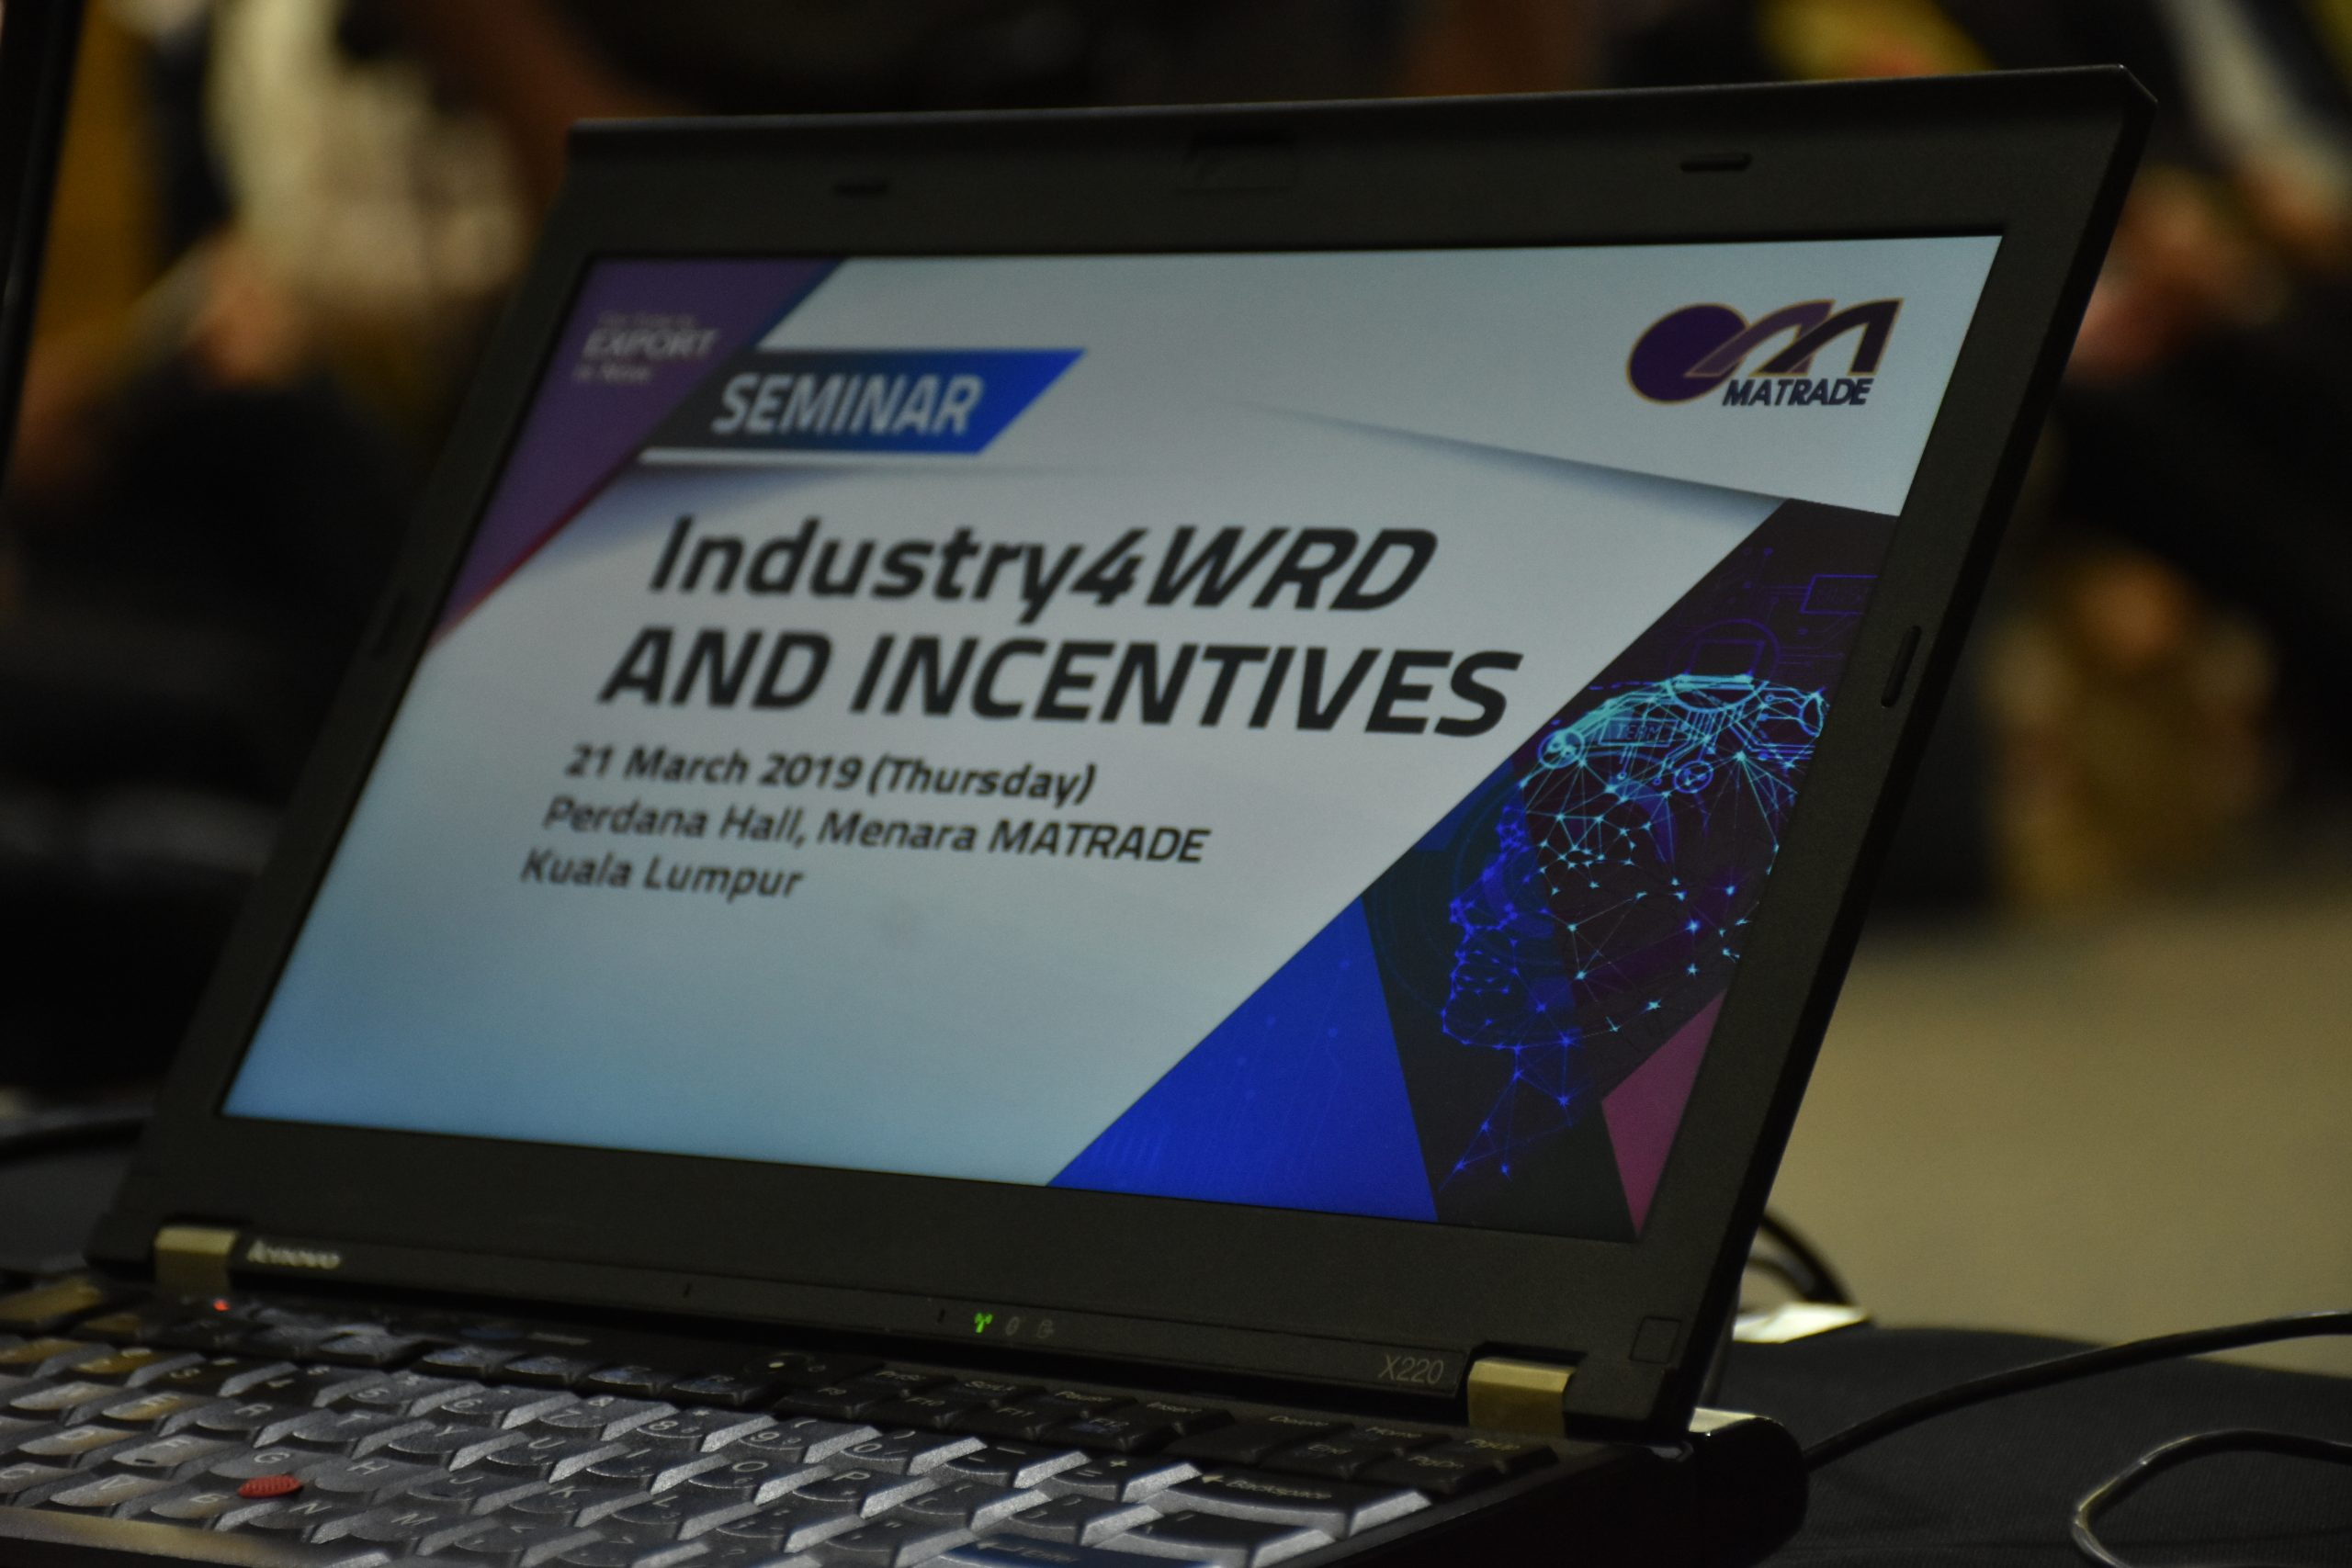 Industry4WRD and Incentive